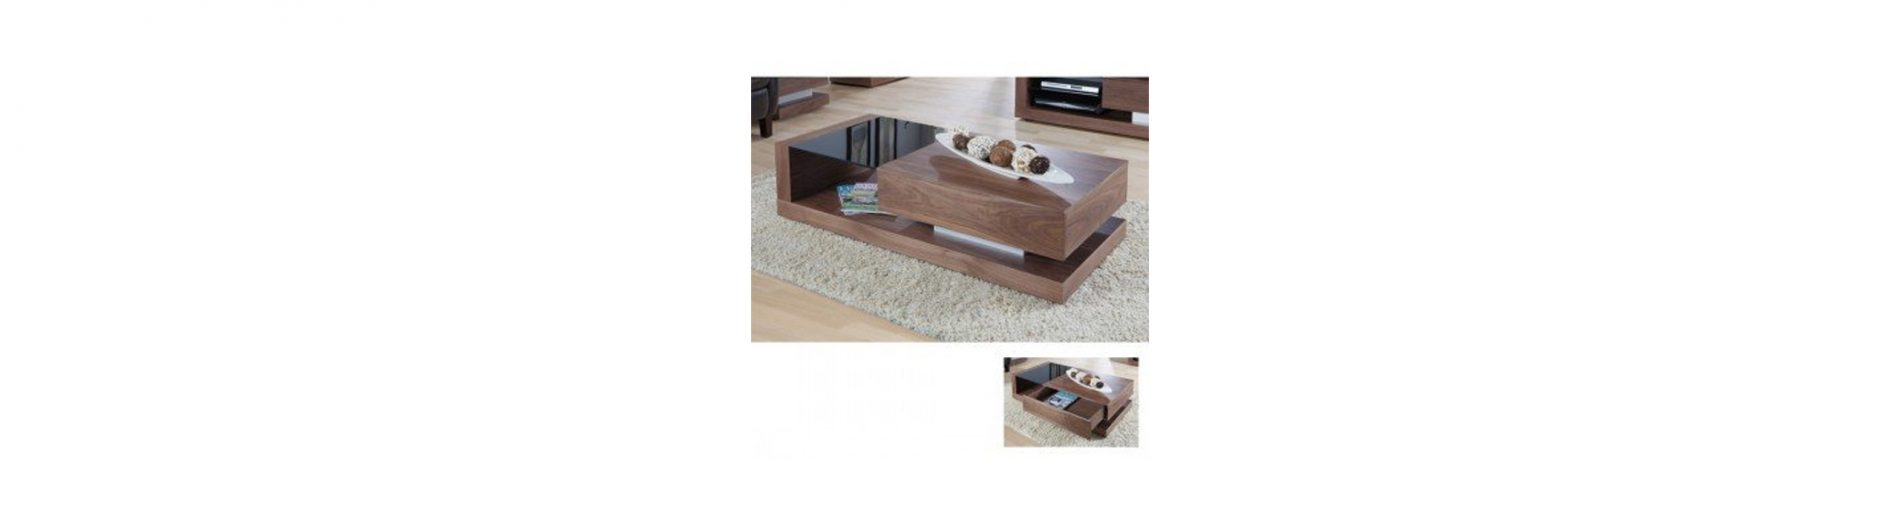 Wood and Glass Coffee Tables: What's the Best Buy?